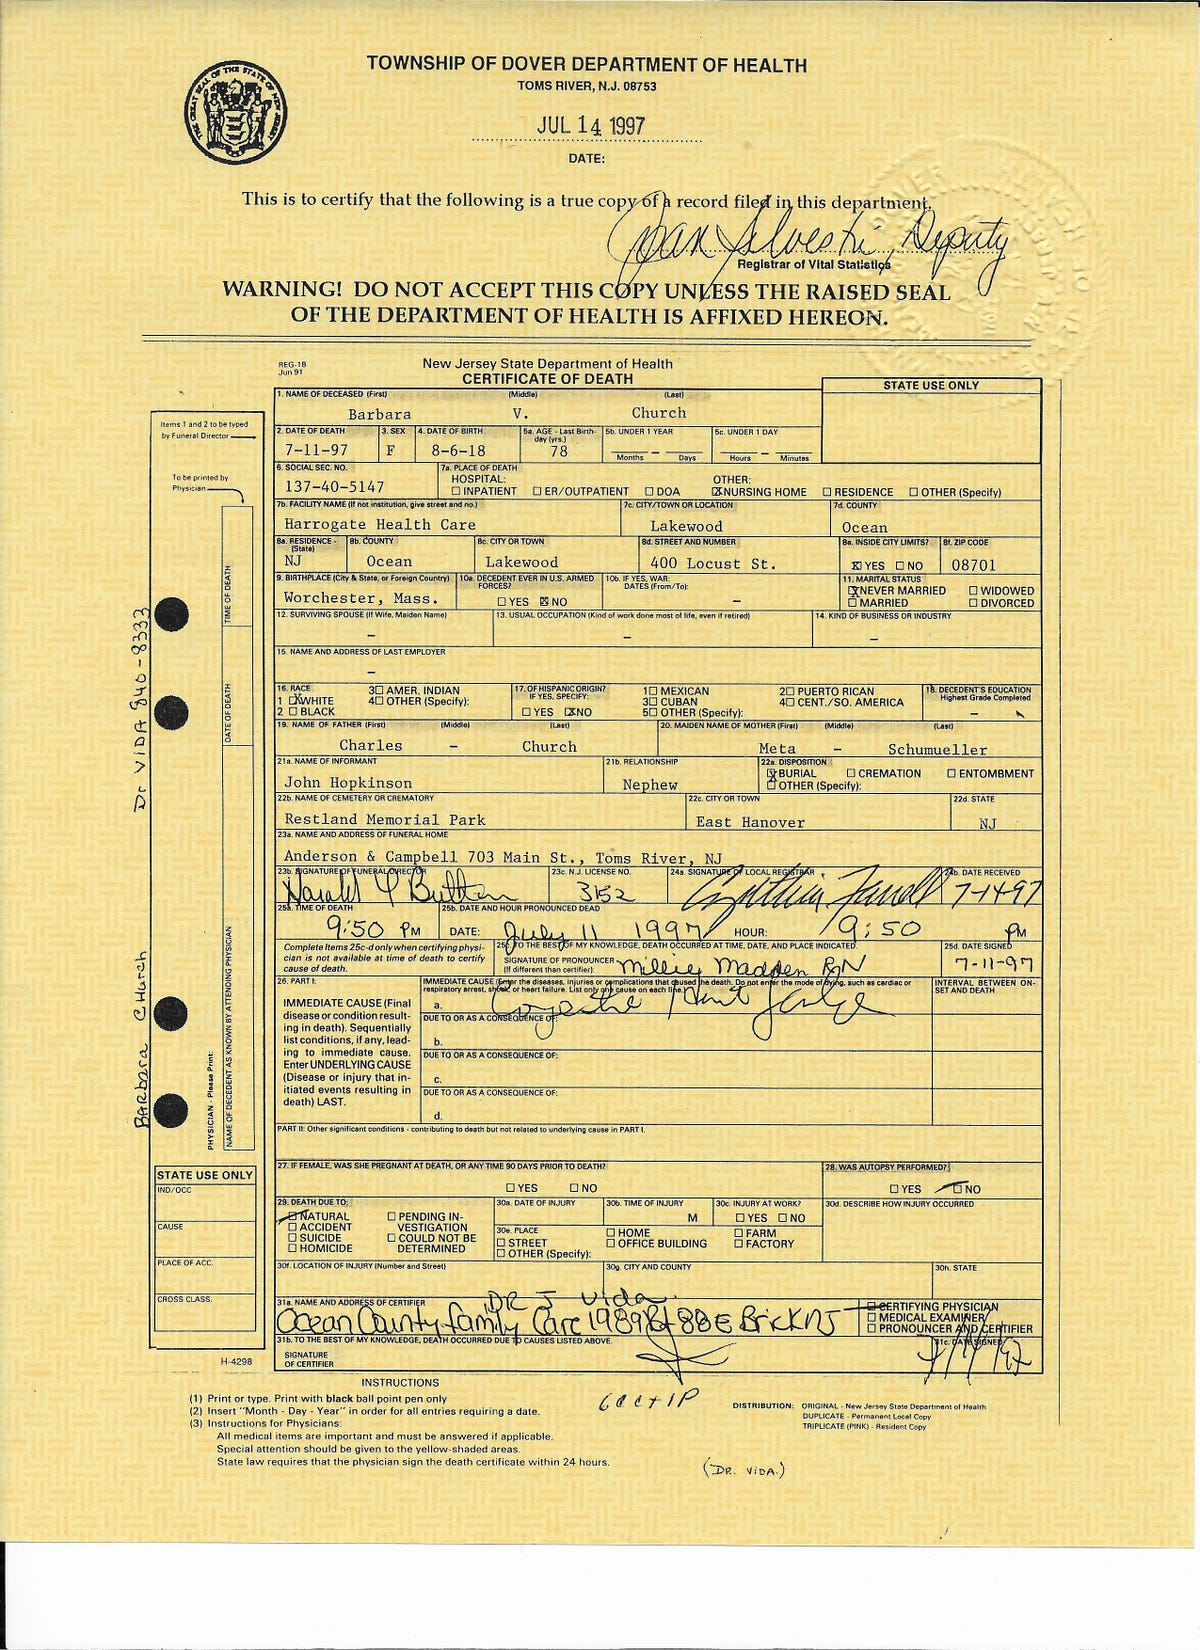 World record revealed by death certificate?